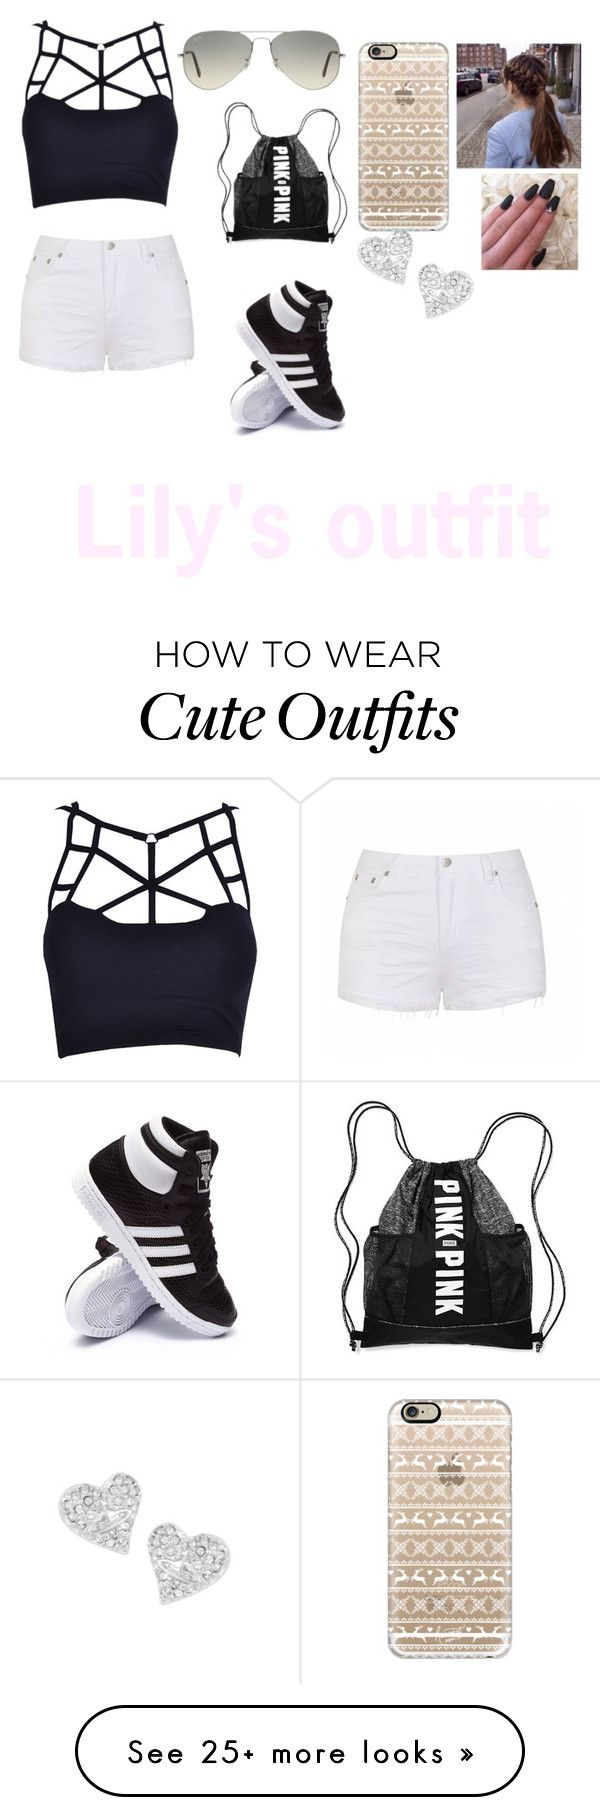 """""""Lily's outfit ch.1"""" by magcon-26mgmt on Polyvore featuring adidas, Casetify, Ray-Ban, Ally Fashion and Vivienne Westwood"""